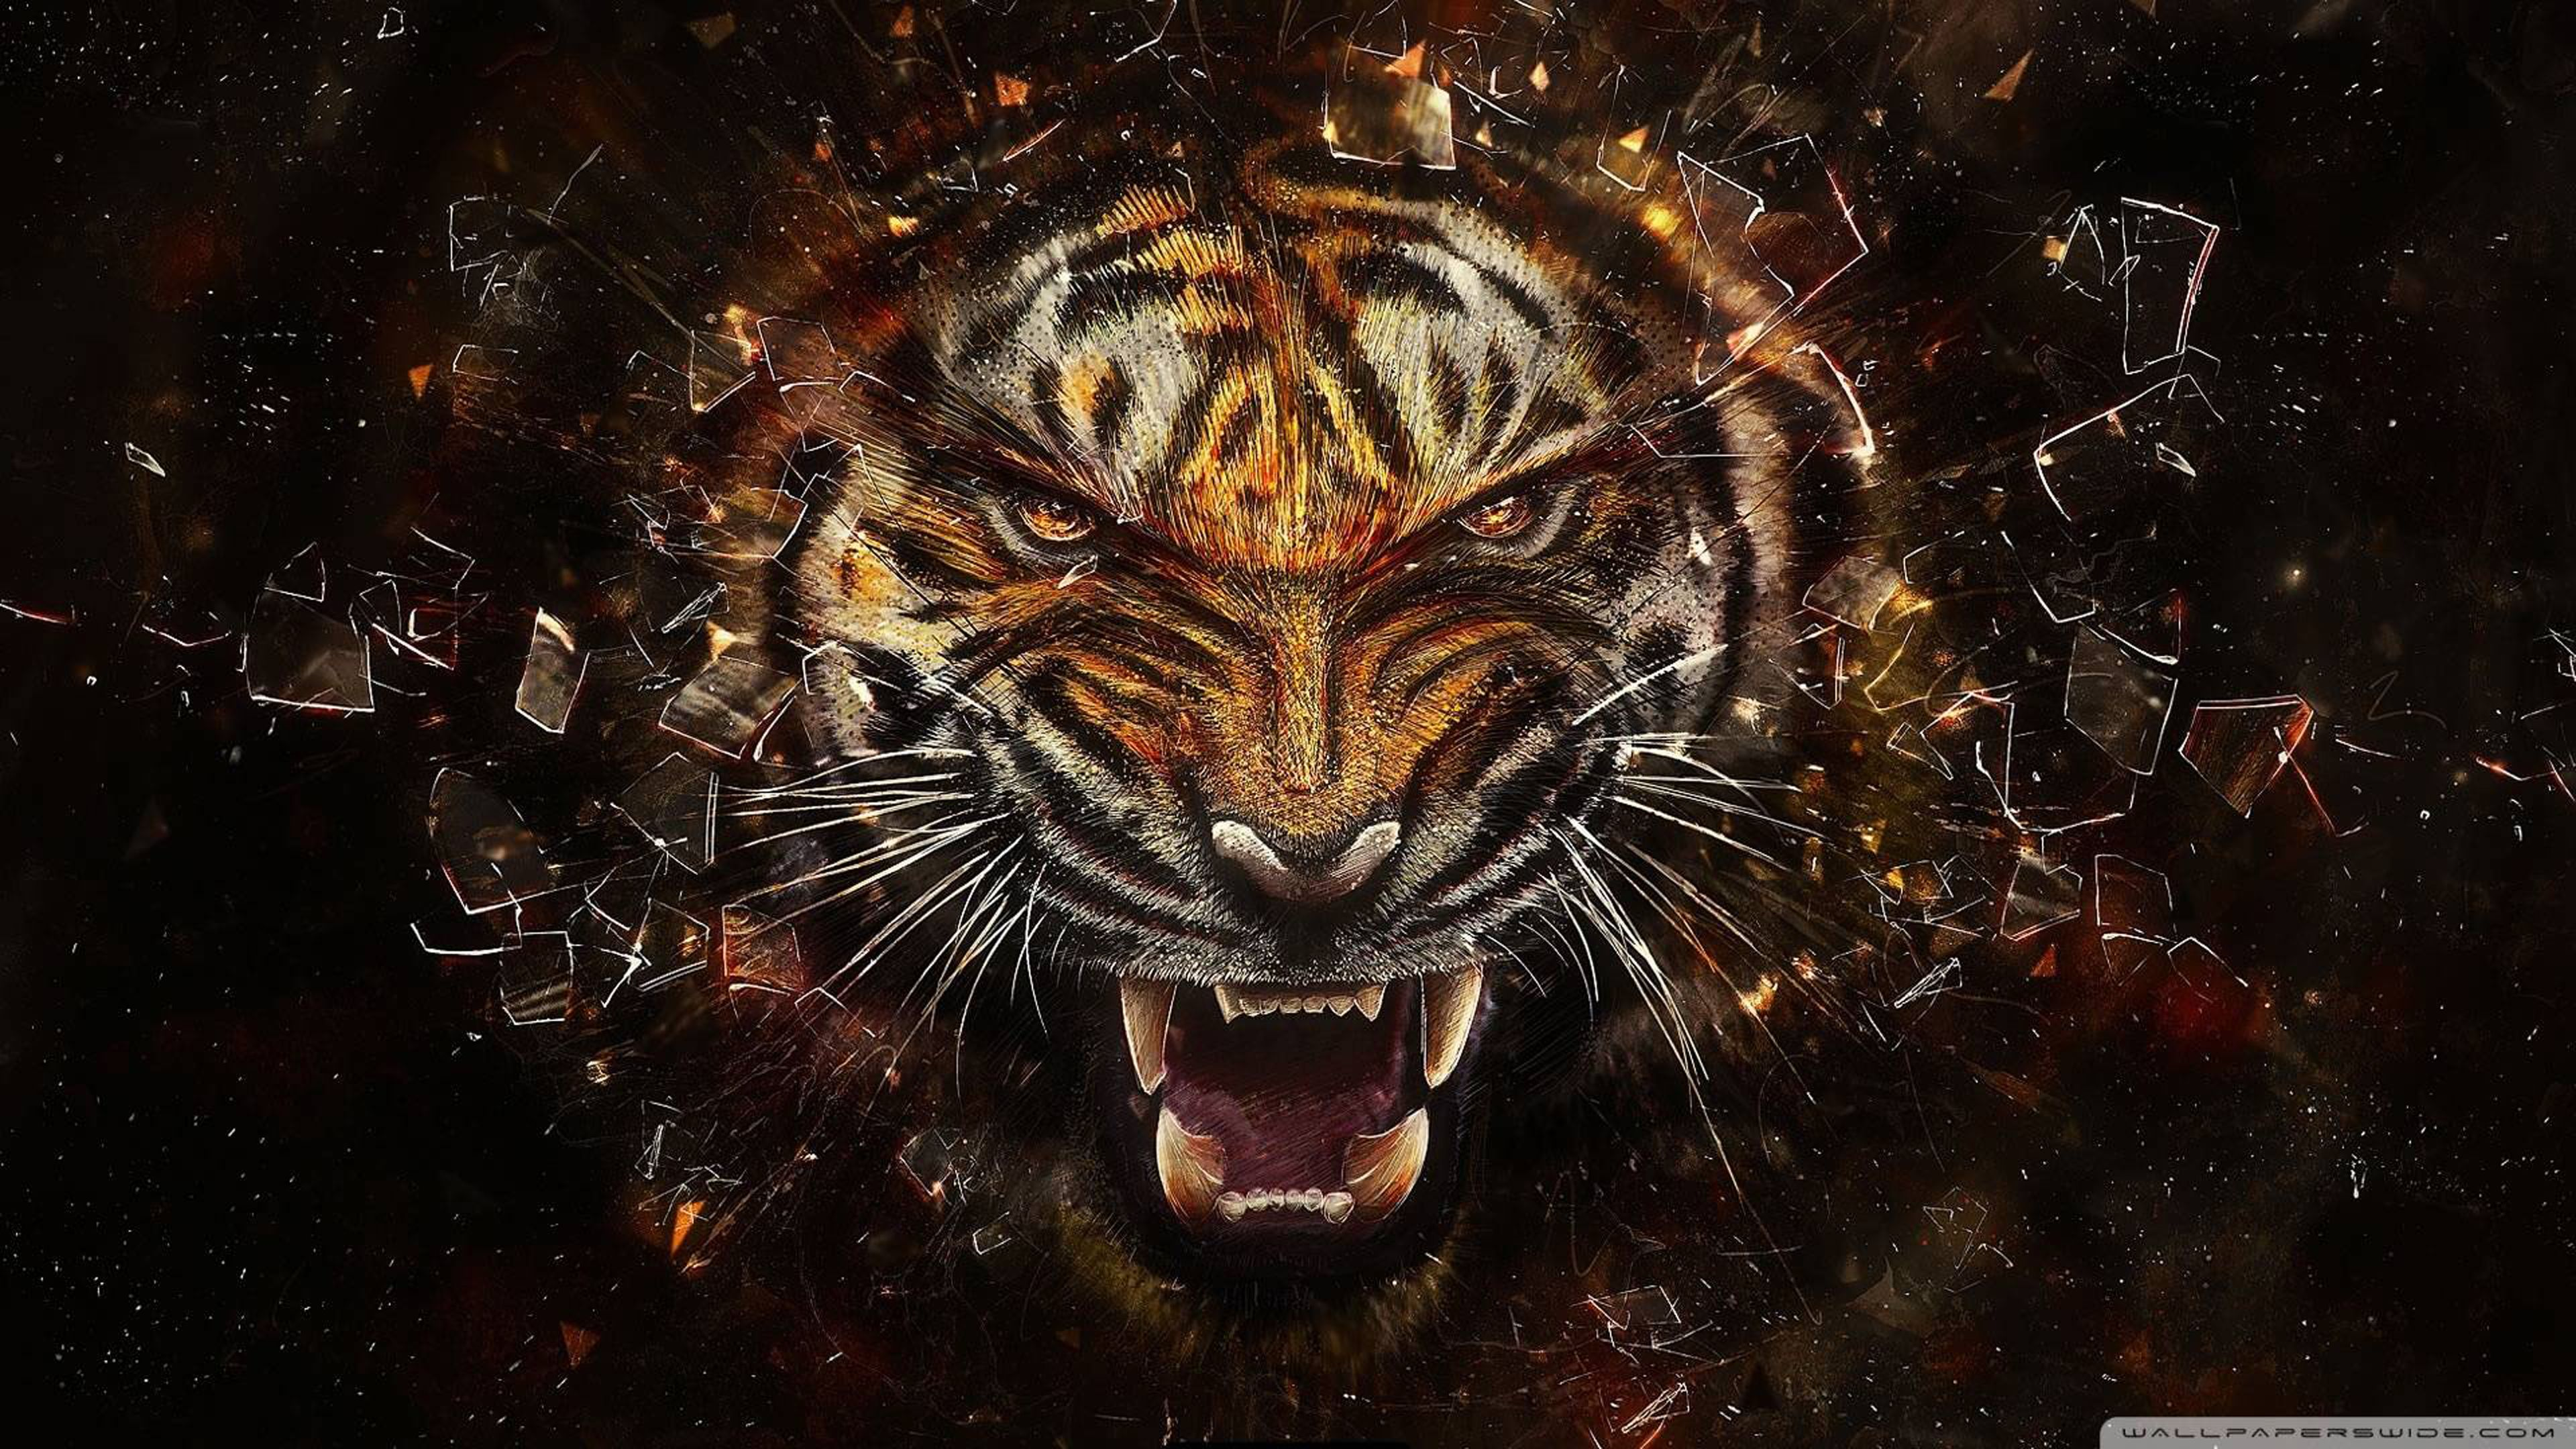 Roaring Tiger Ultra Hd 4k Wallpaper Tiger Images Angry Tiger Tiger Wallpaper